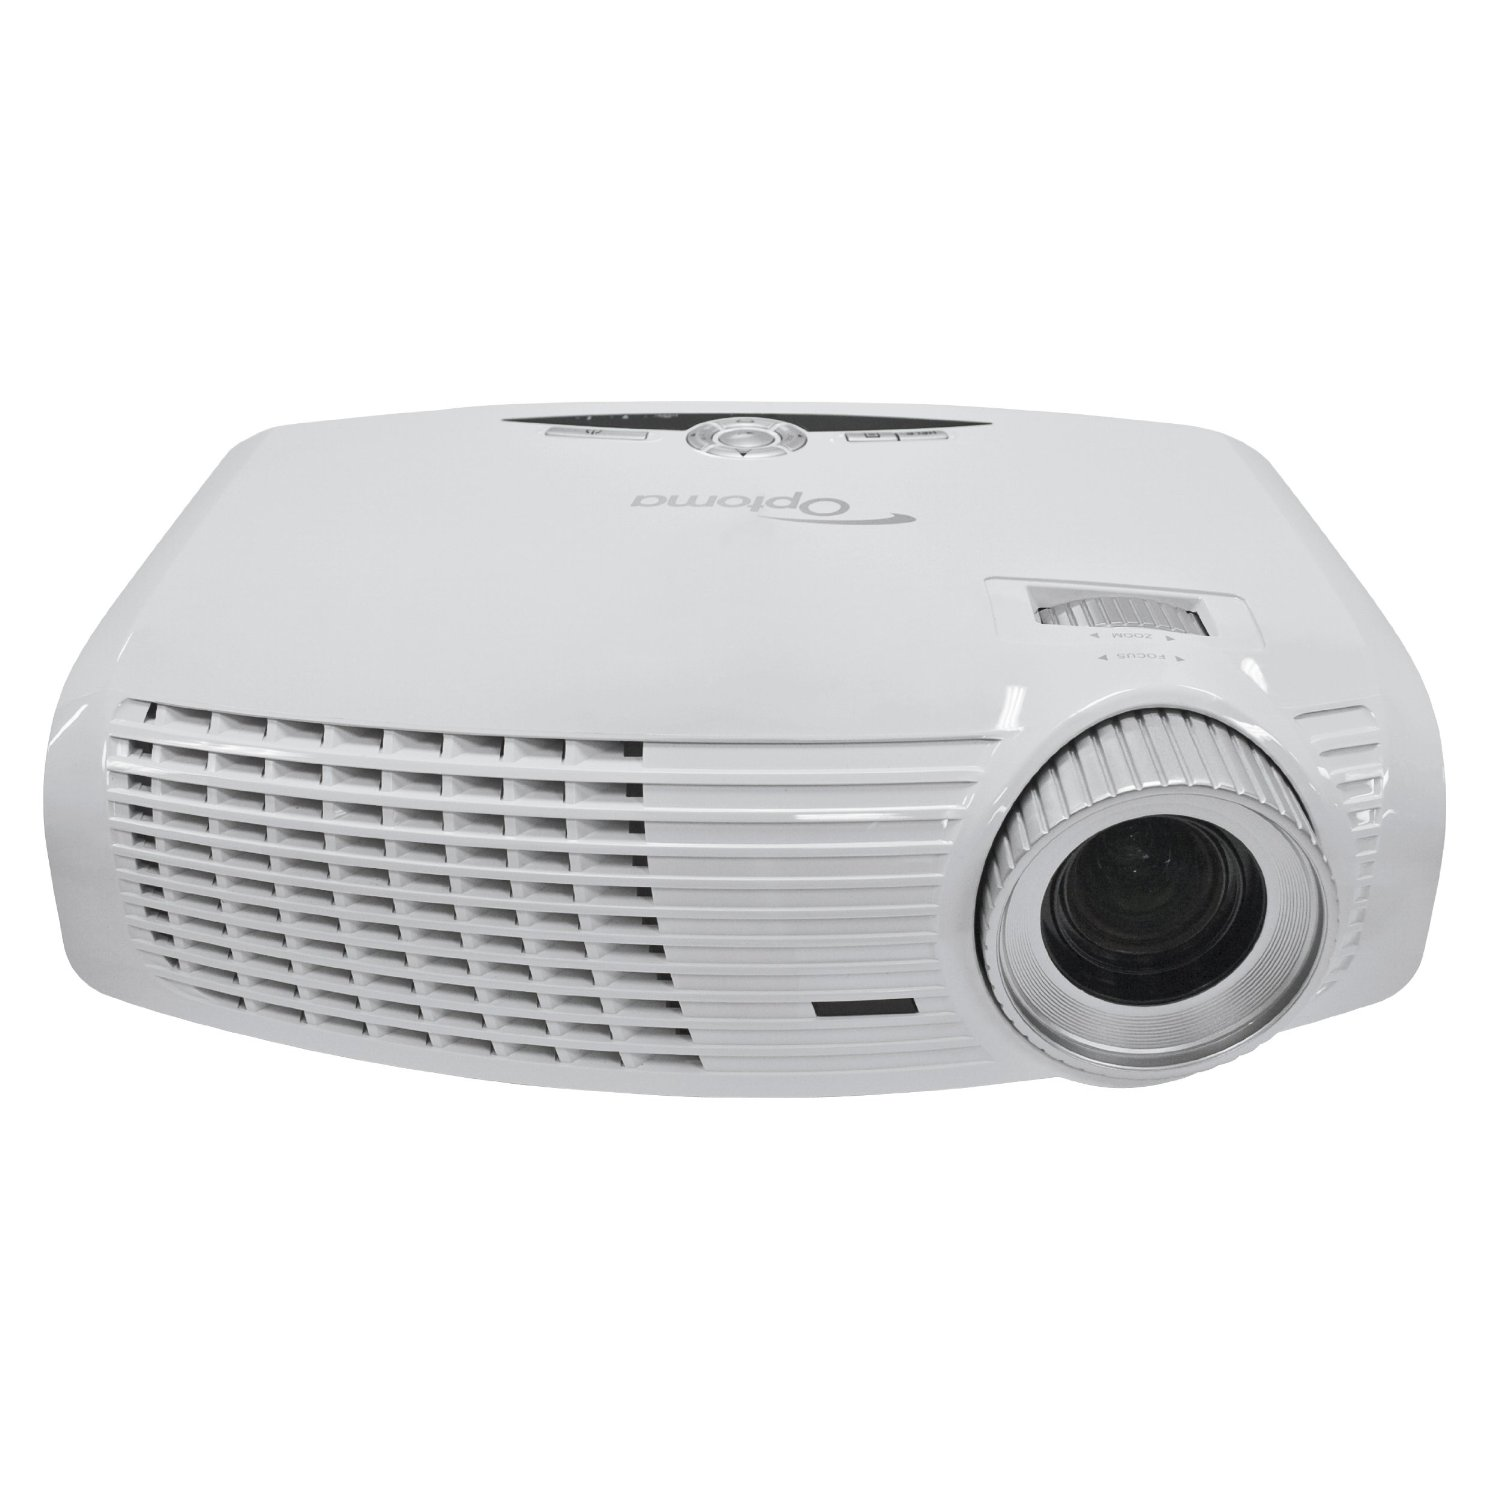 Mini wall best hd projector 1080p reviews optoma hd20 for Mini hd projector